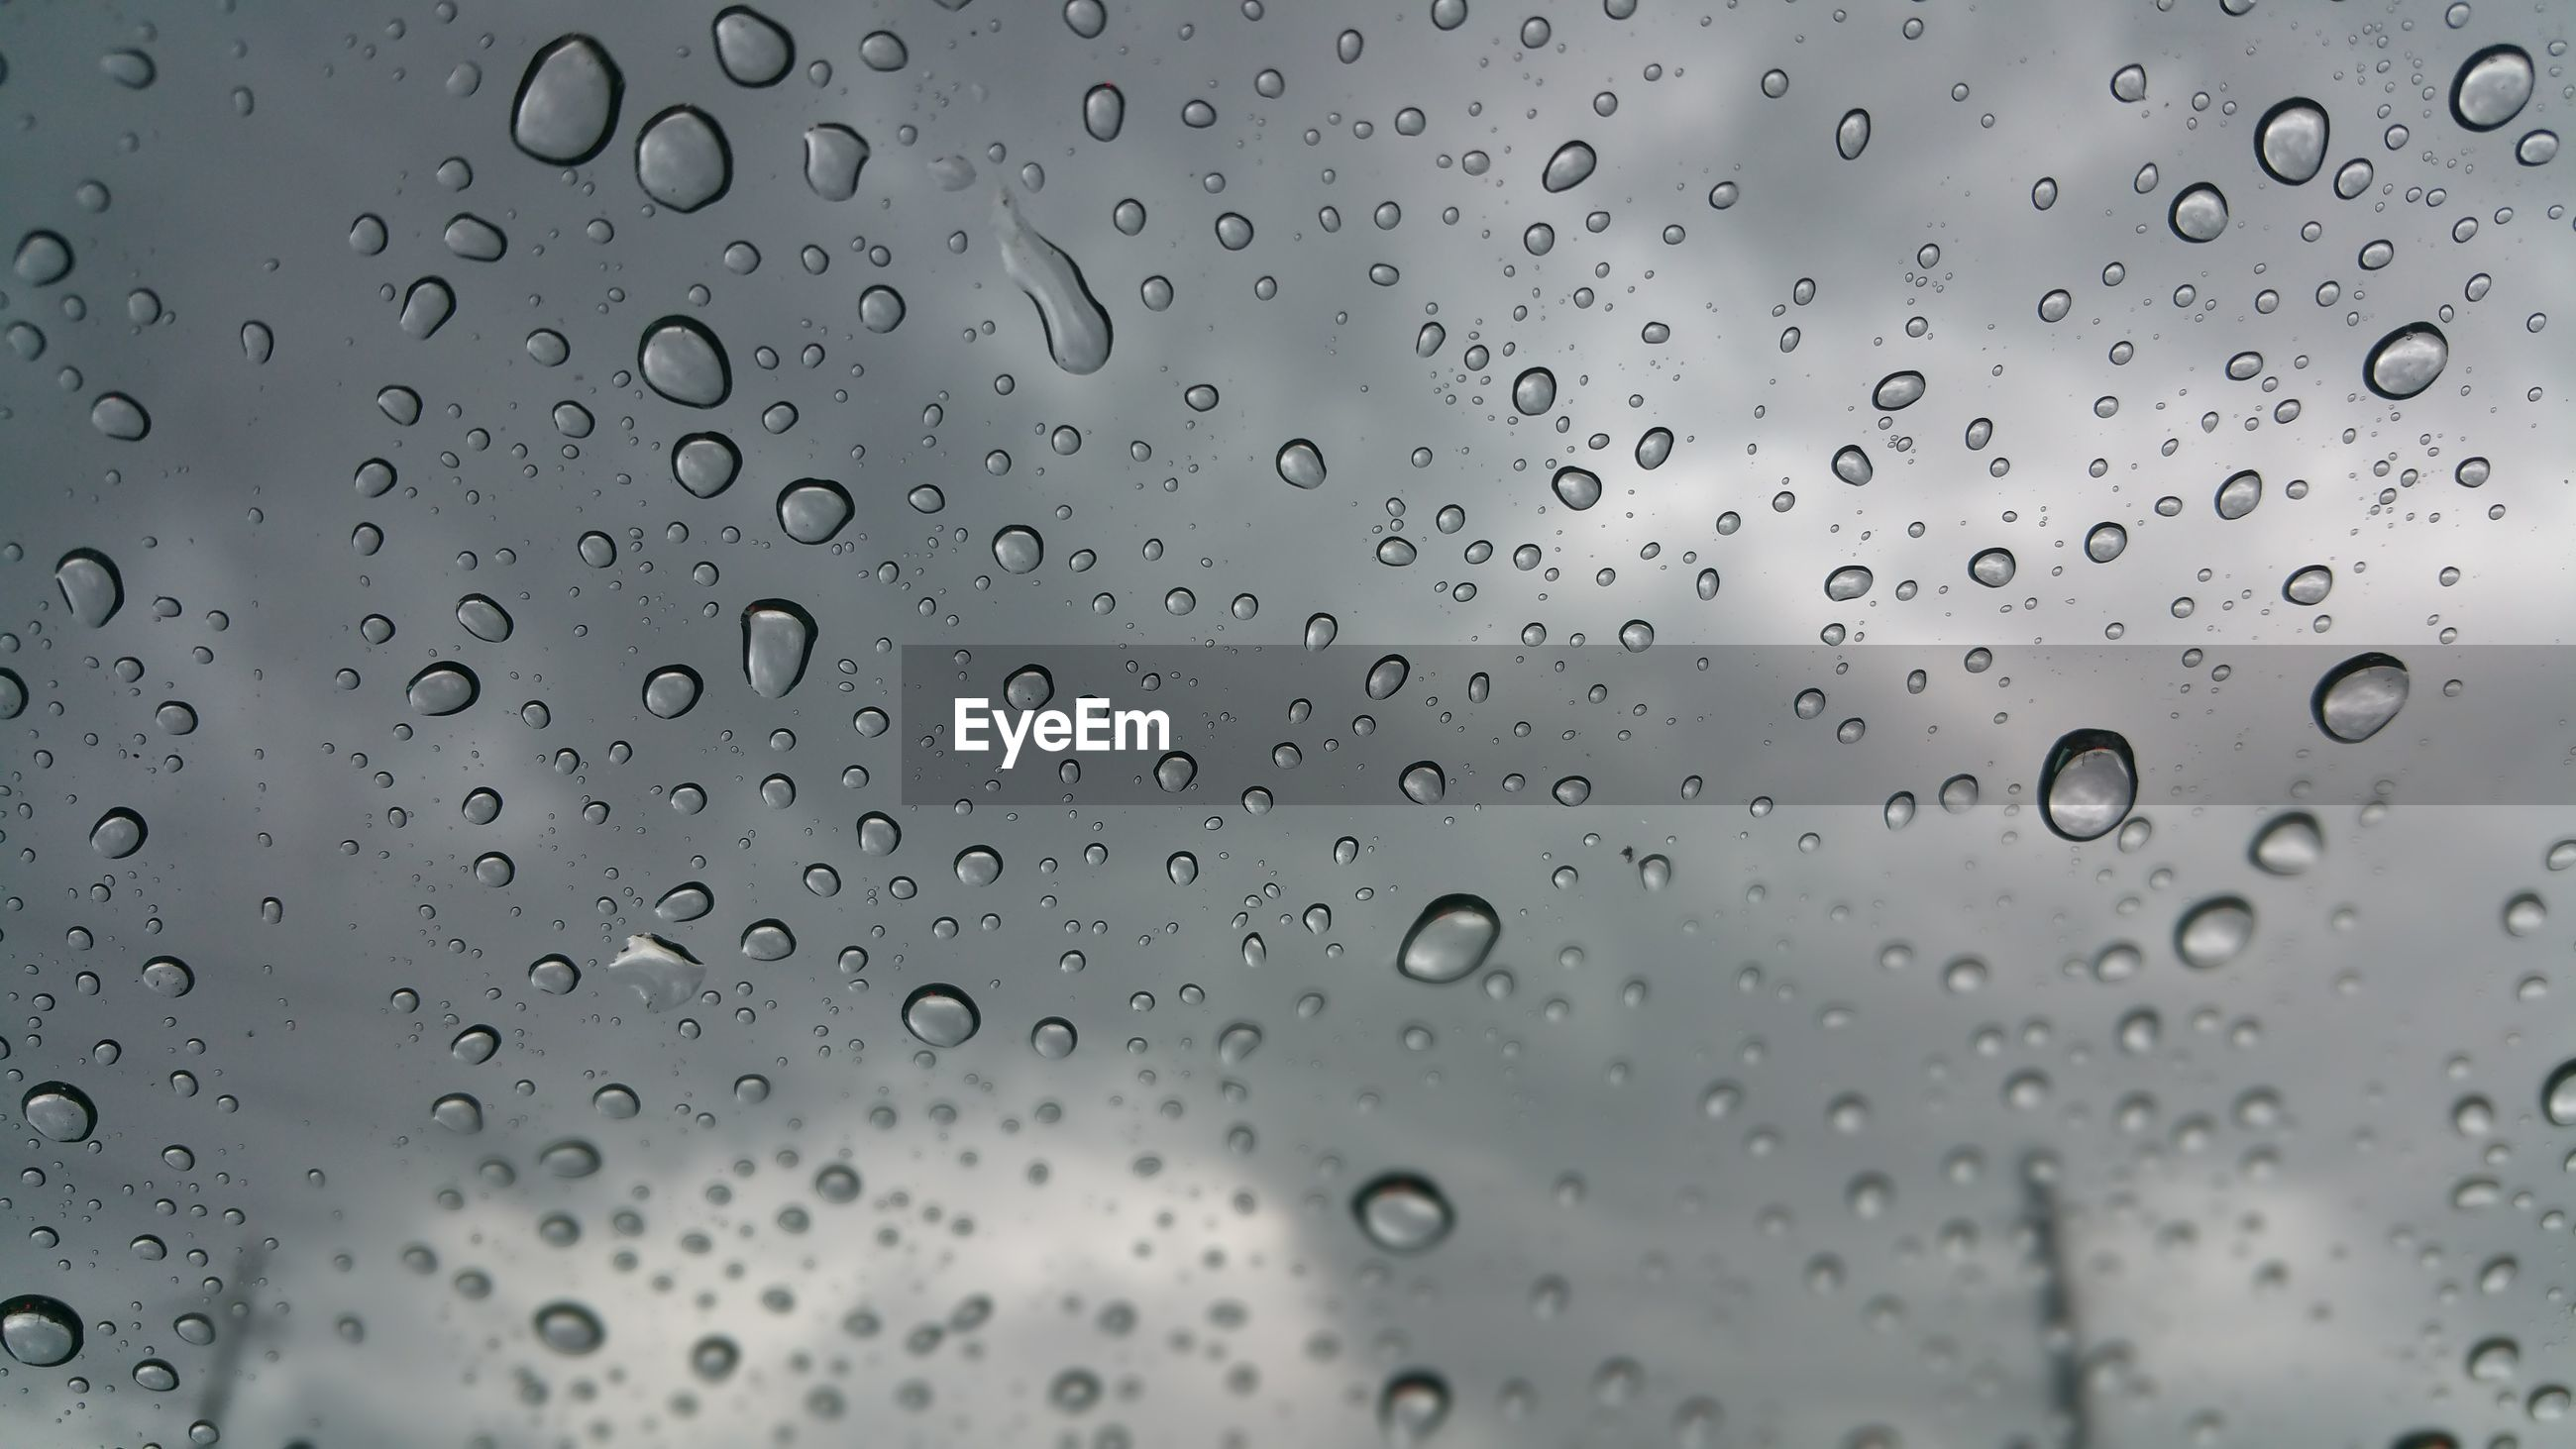 CLOSE-UP OF WATER DROPS ON GLASS AGAINST BLURRED BACKGROUND